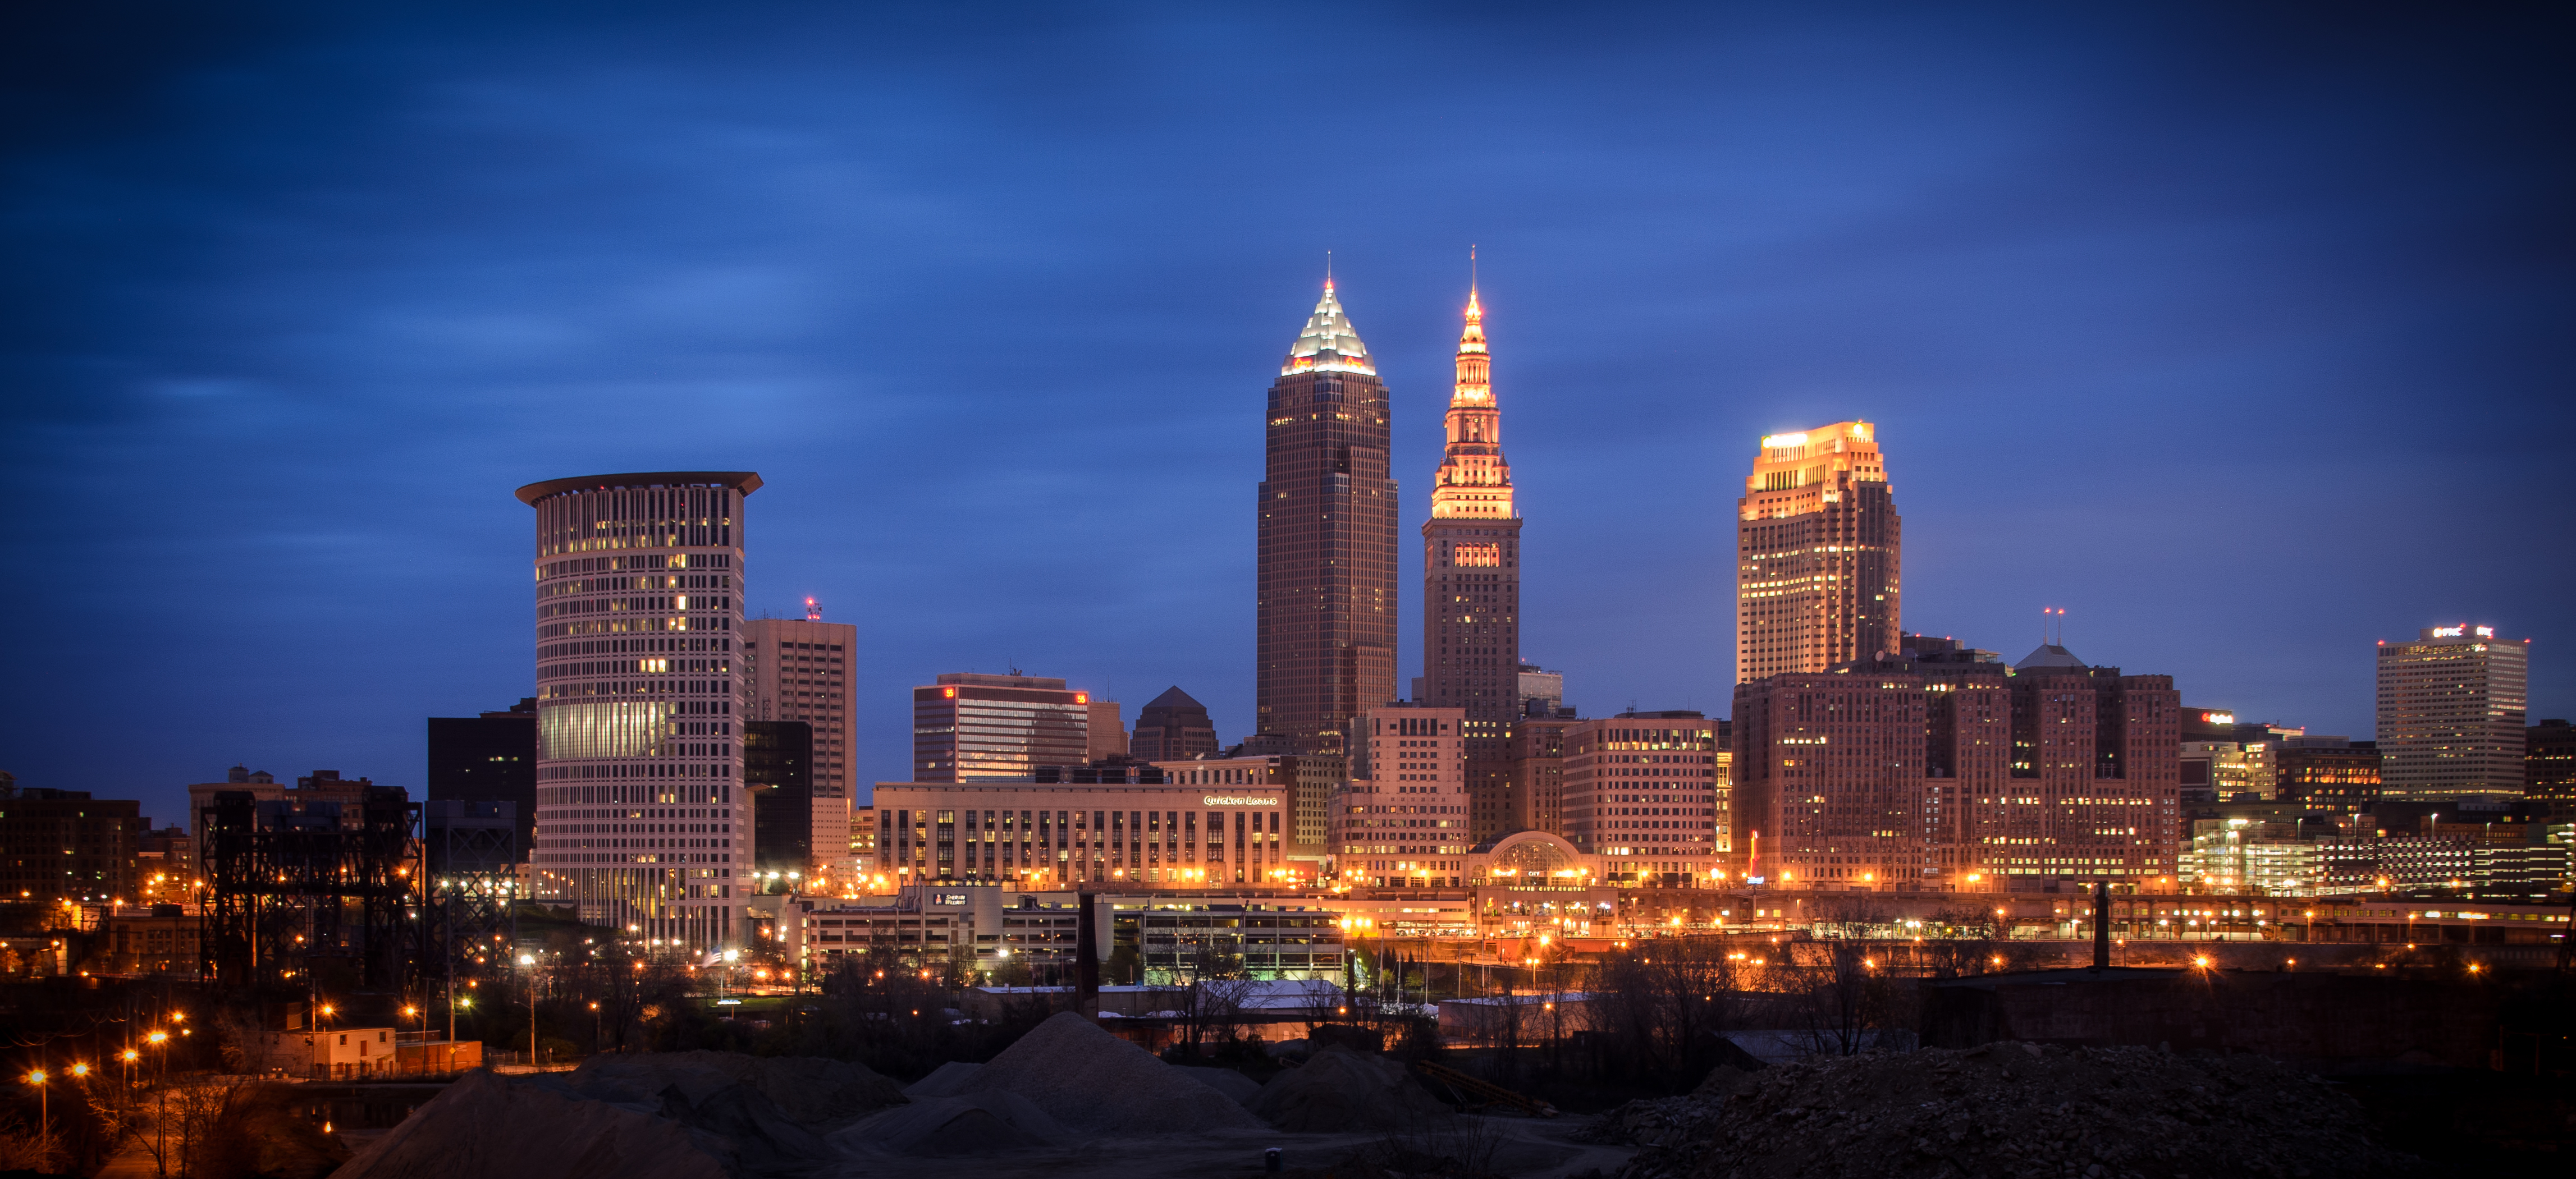 downtown cleveland ohio wallpaper - photo #29